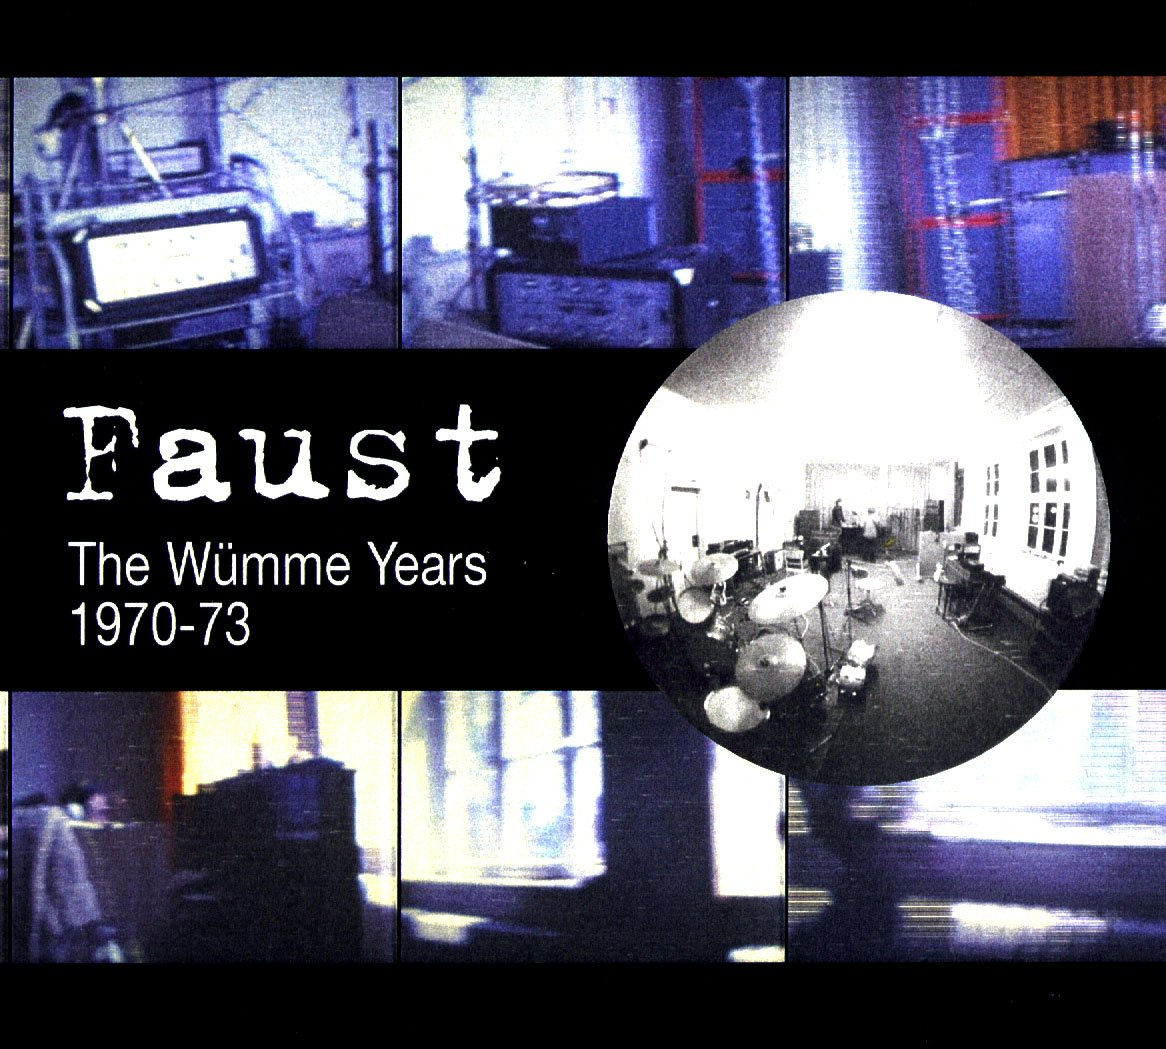 Wumme Years 1970-1973 by Caruso